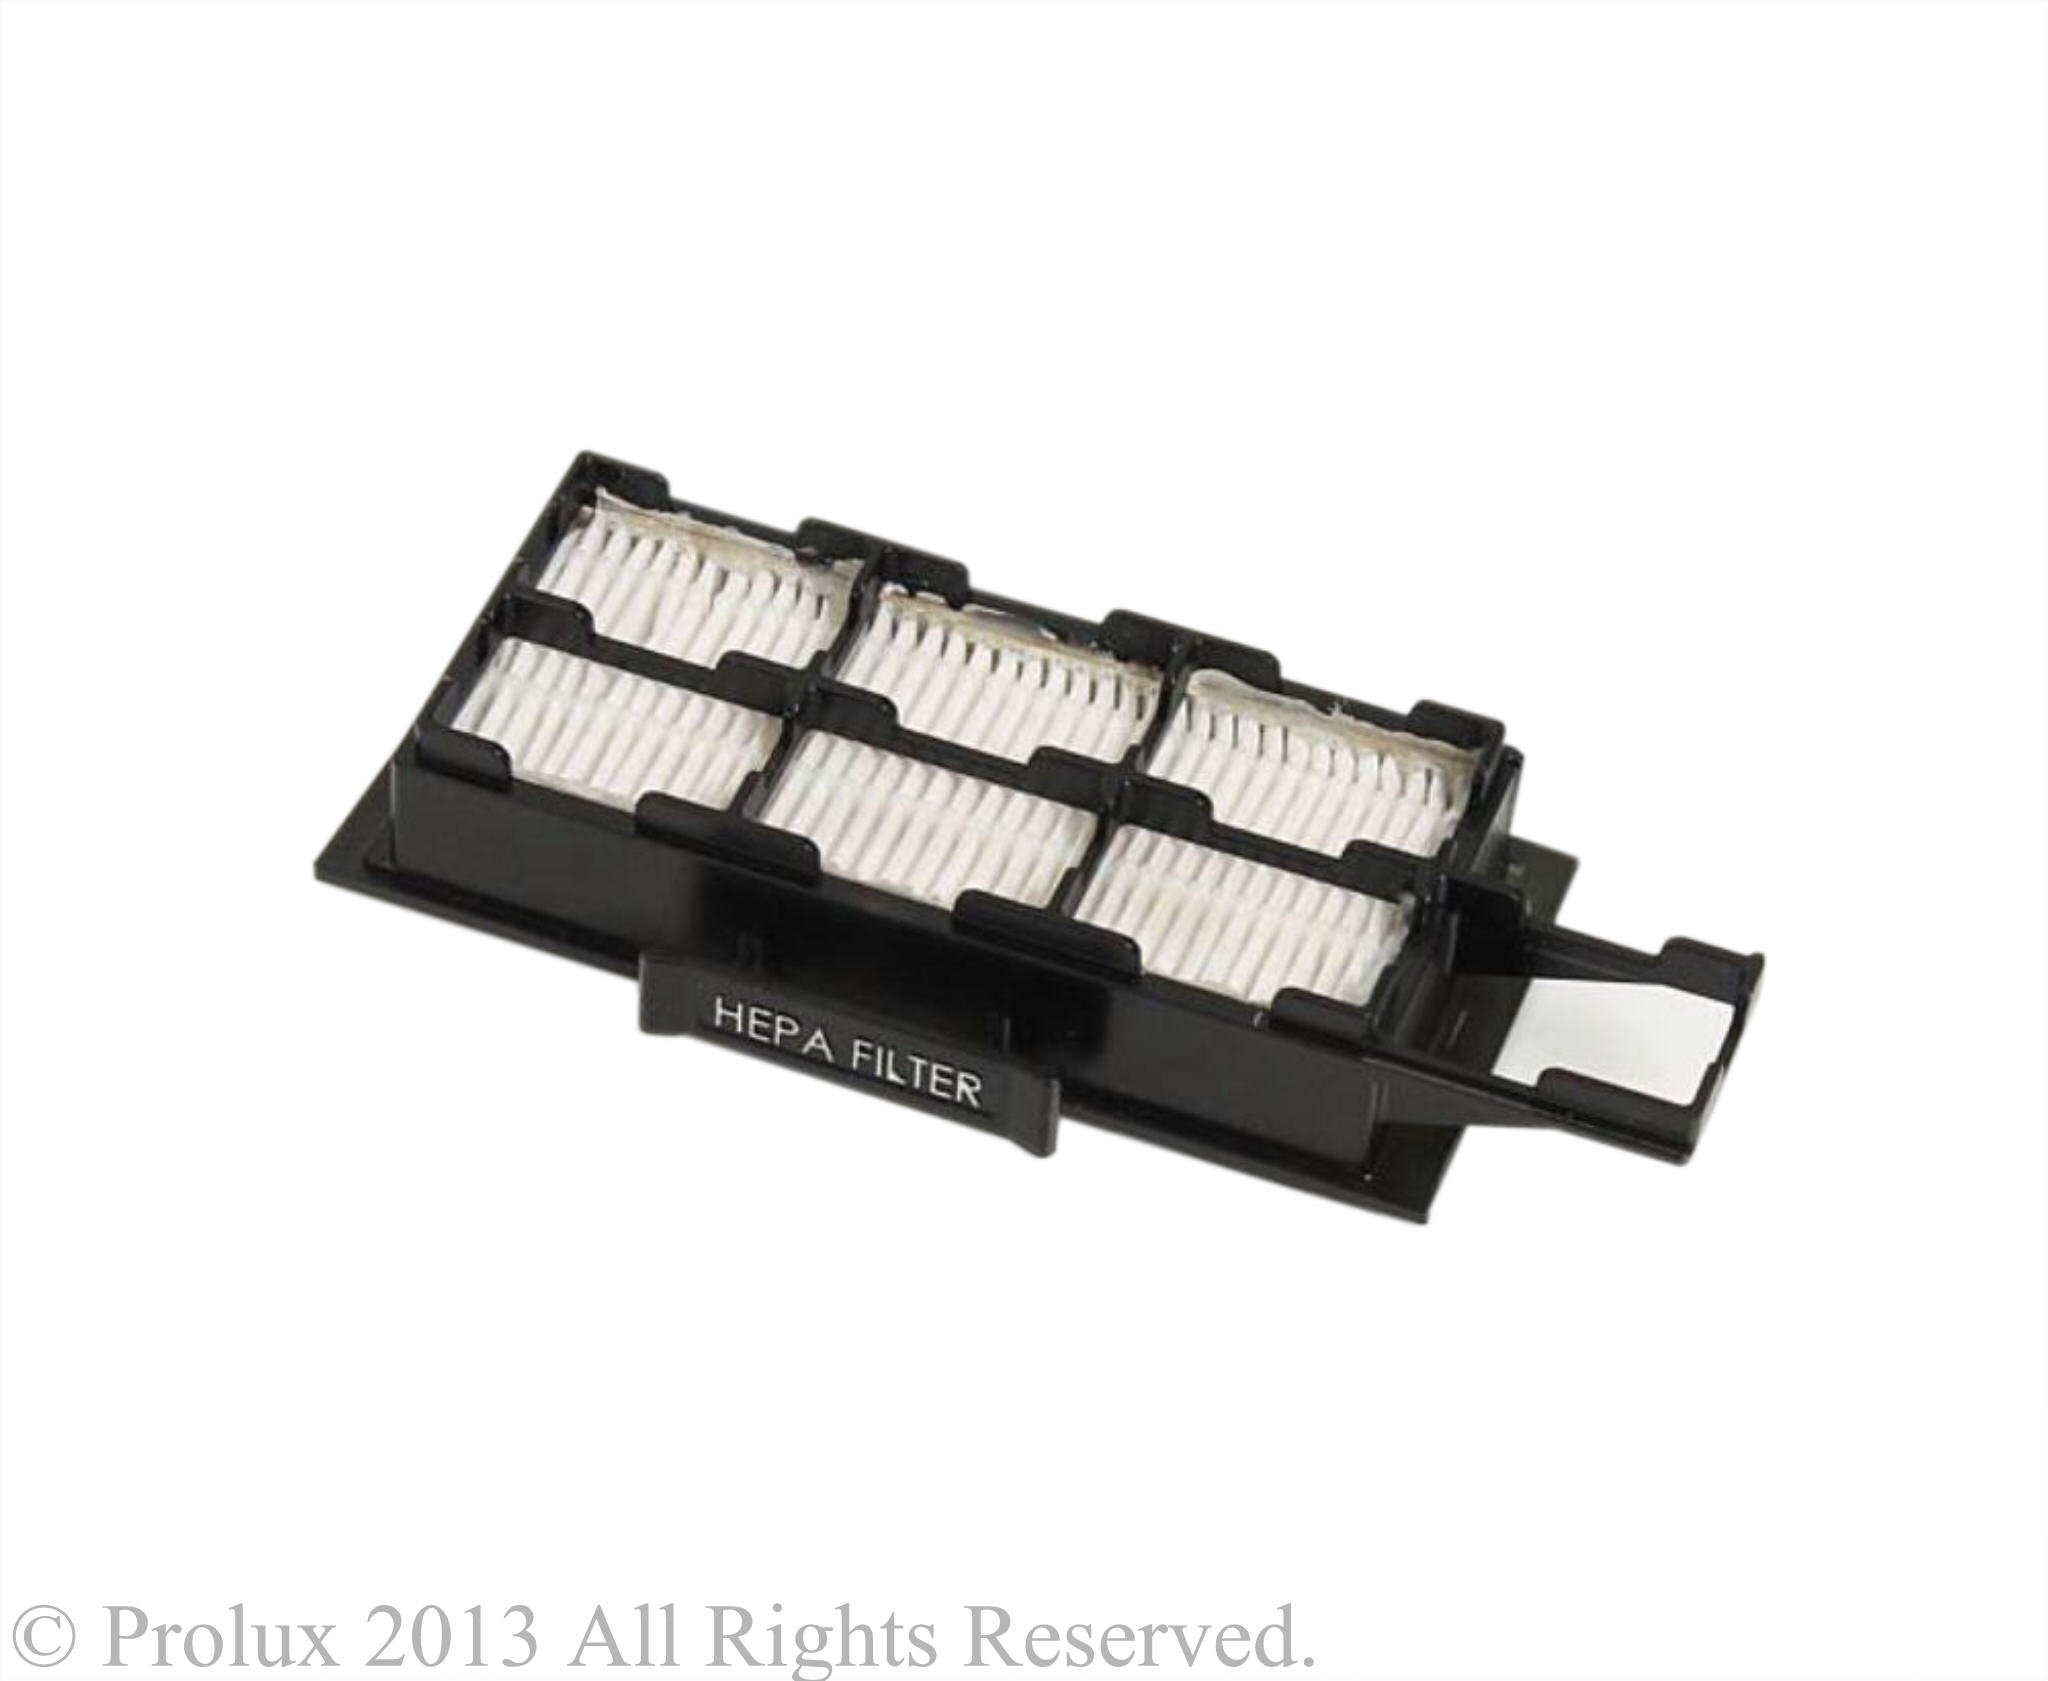 New Prolux 7000 series replacement HEPA filter upright vacuum cleaner